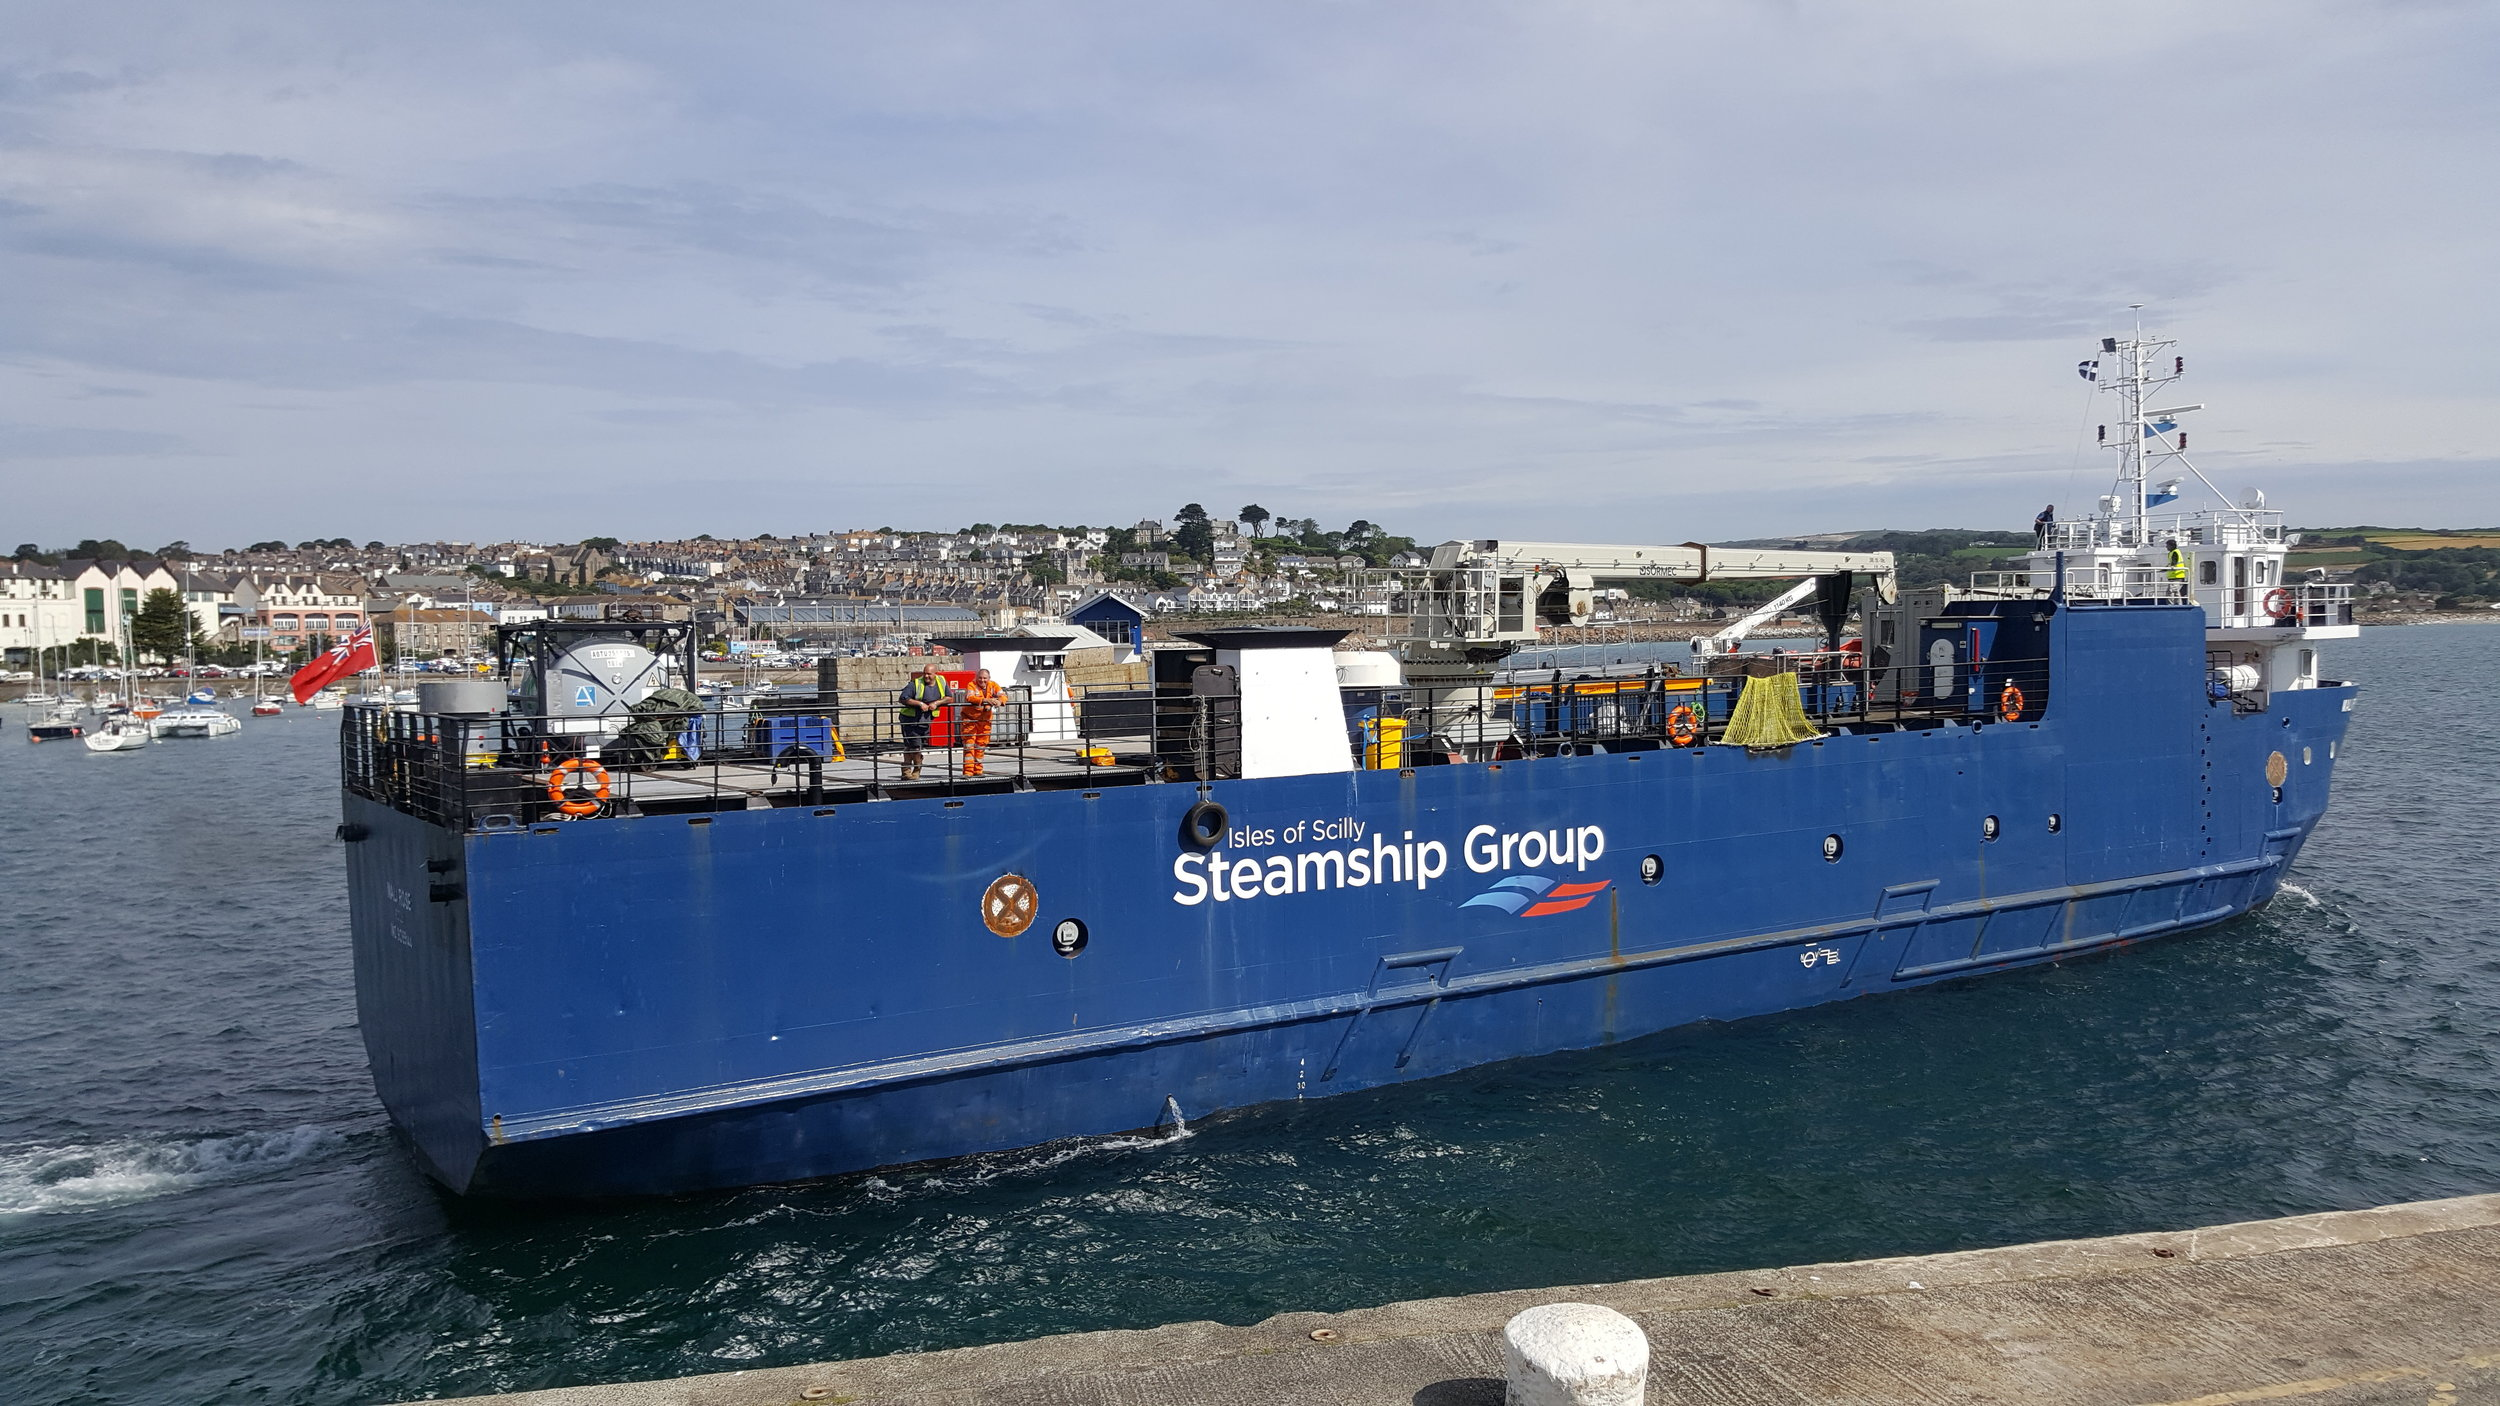 The Mali Rose departing Penzance Harbour for Scilly this morning.